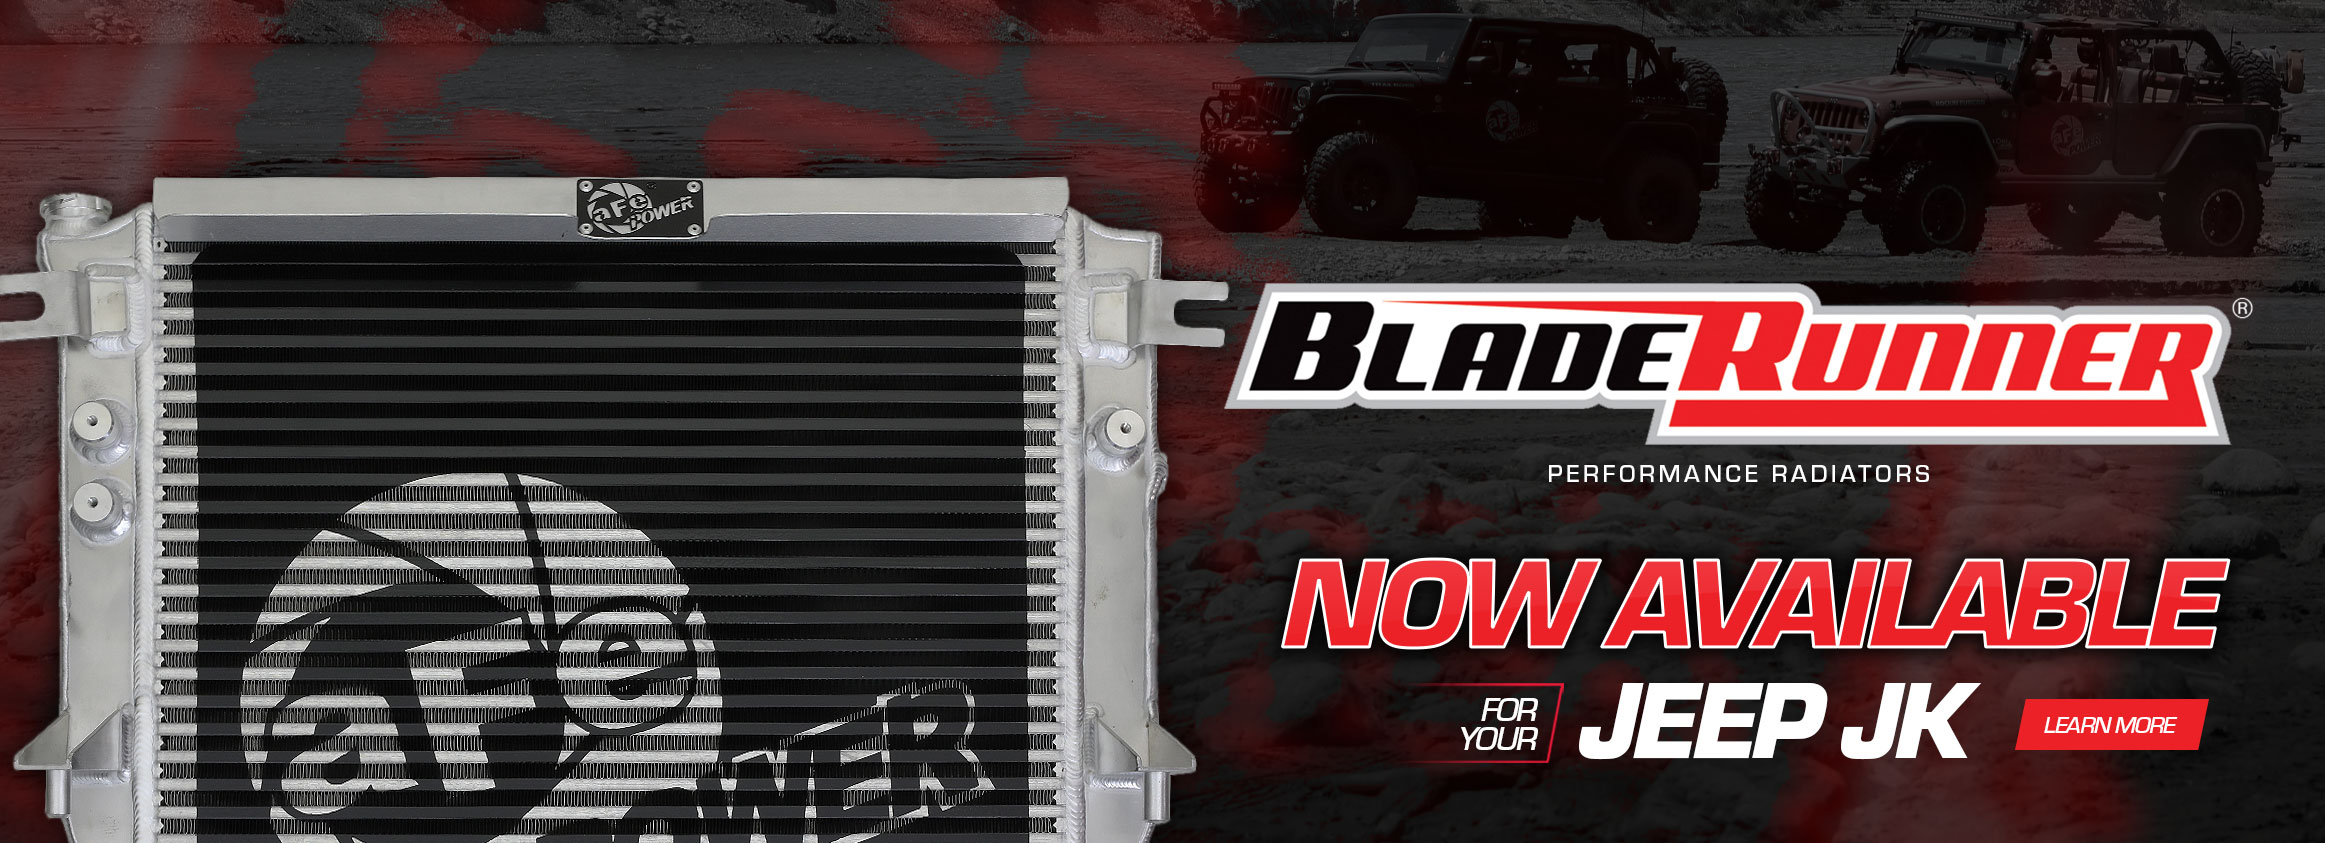 BladeRunner Performance Radiators